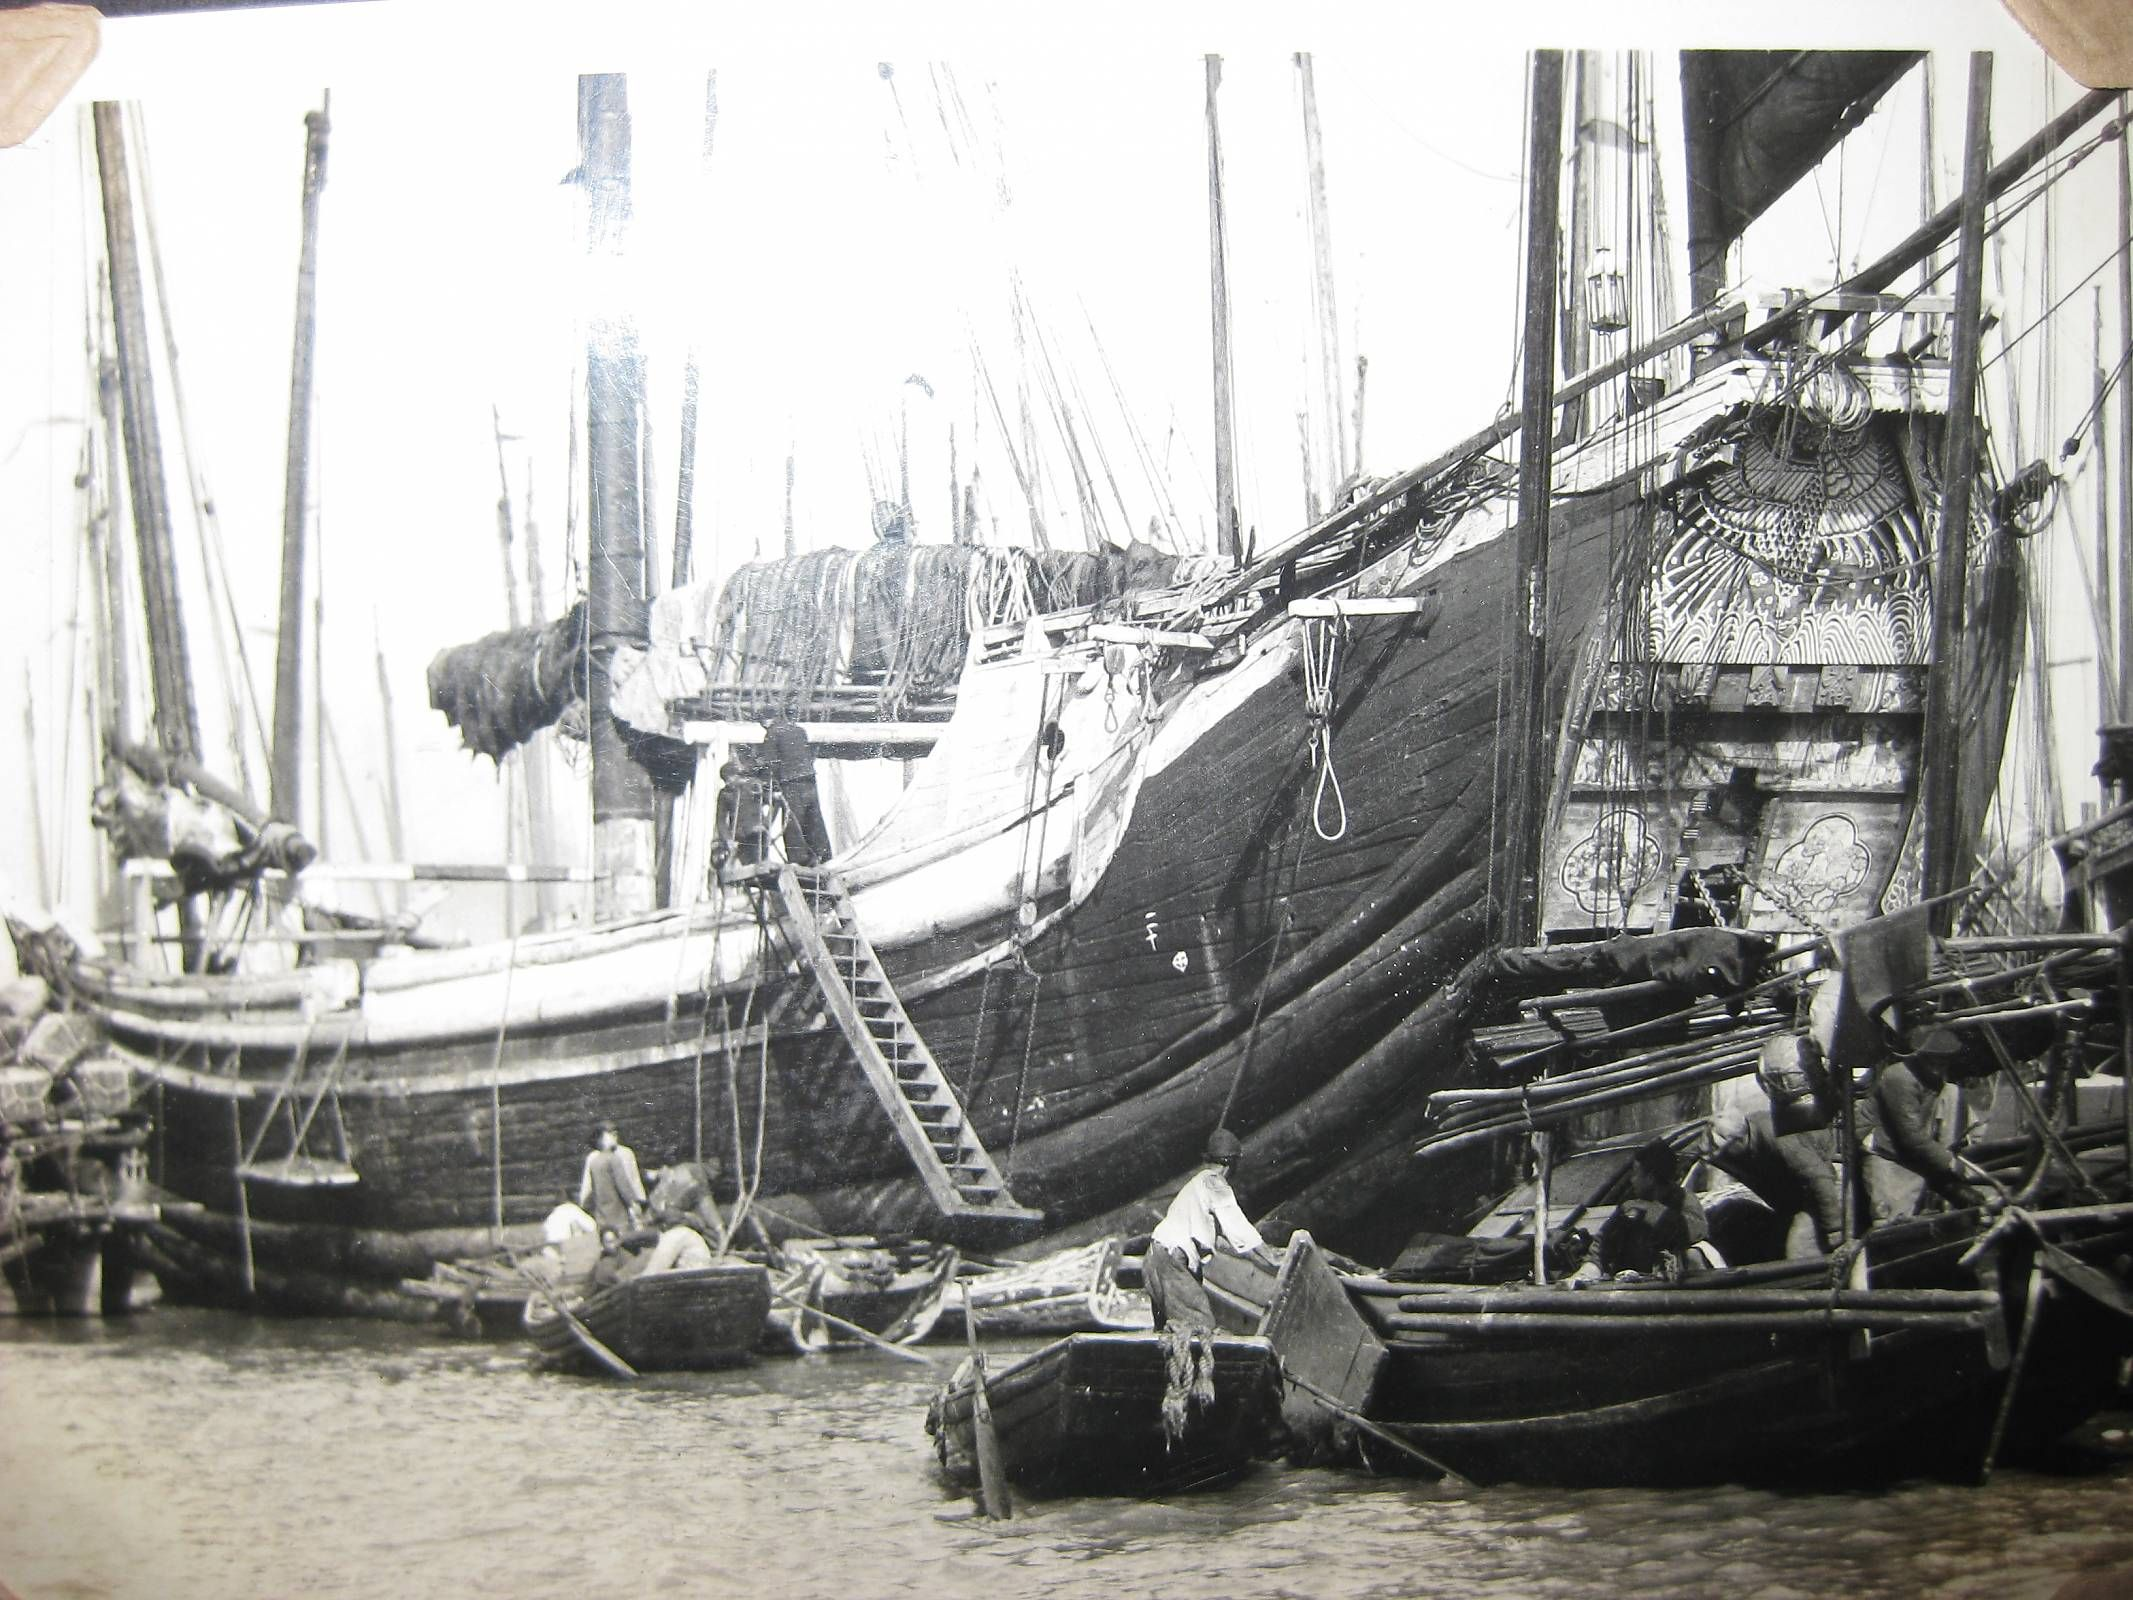 Pin by Vern Rowe on CHINESE JUNK BOATS | Junk ship, Hull ...